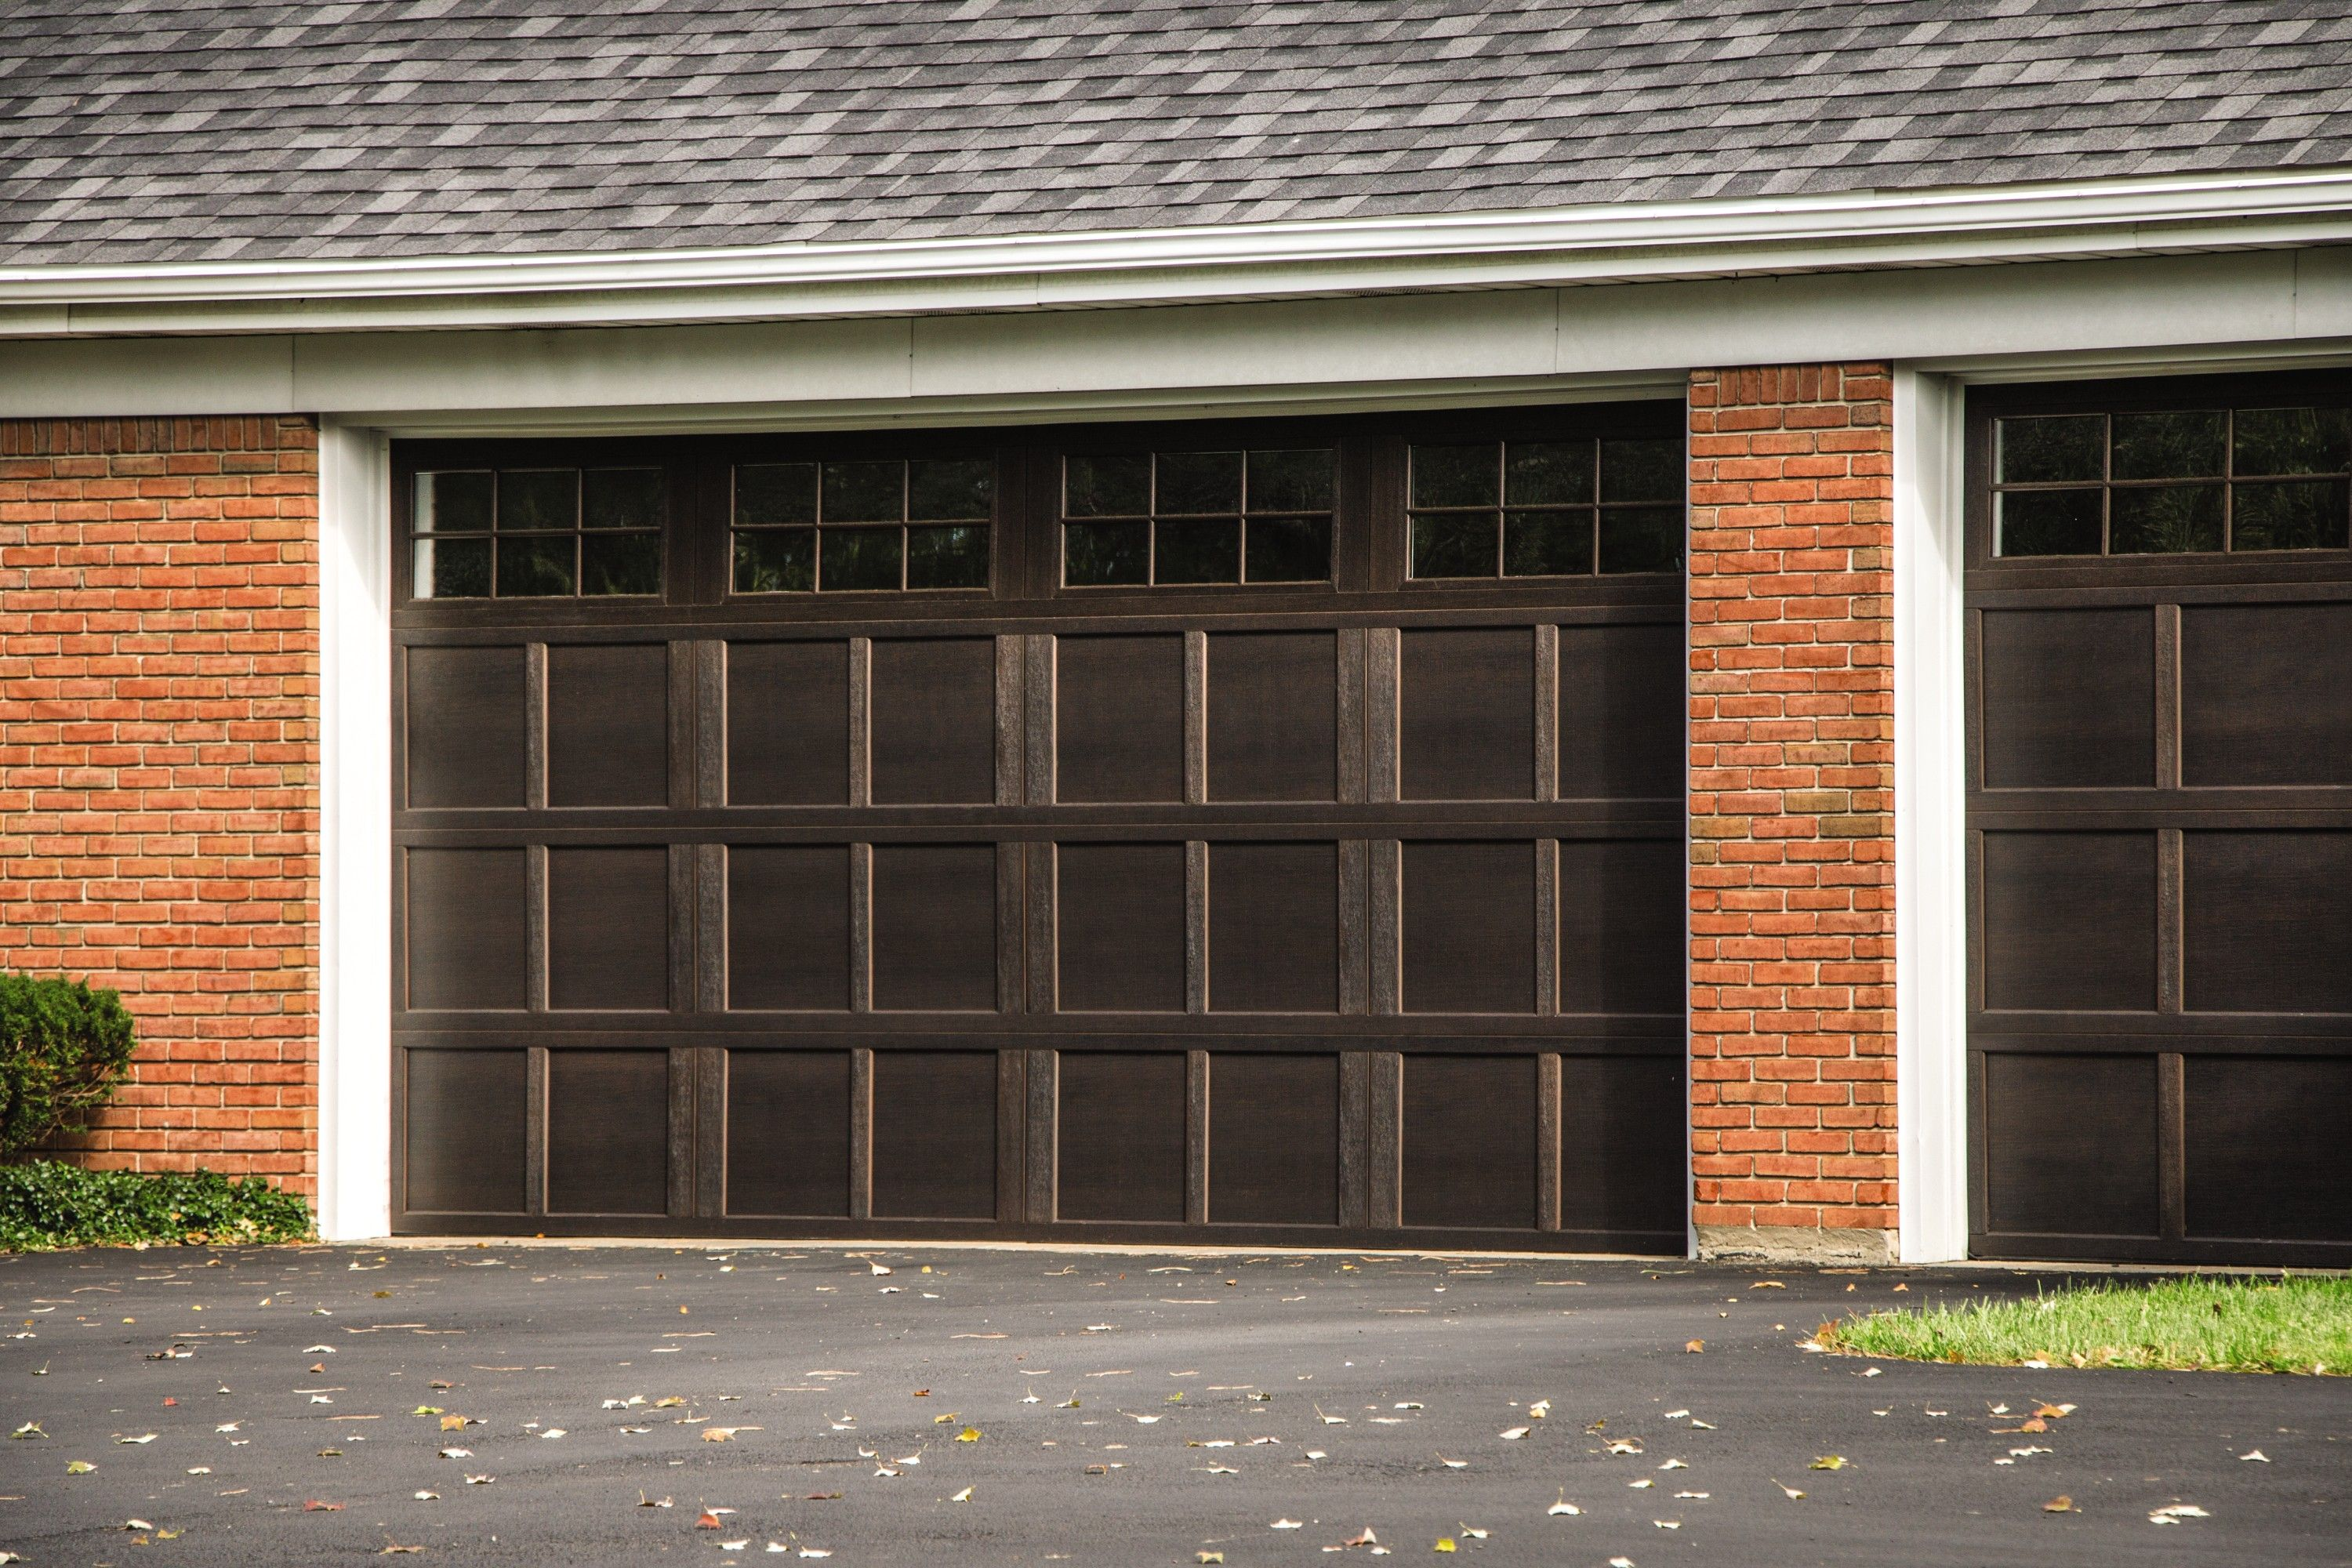 Pin On Dark And Light Garage Door Ideas Black White Gray And